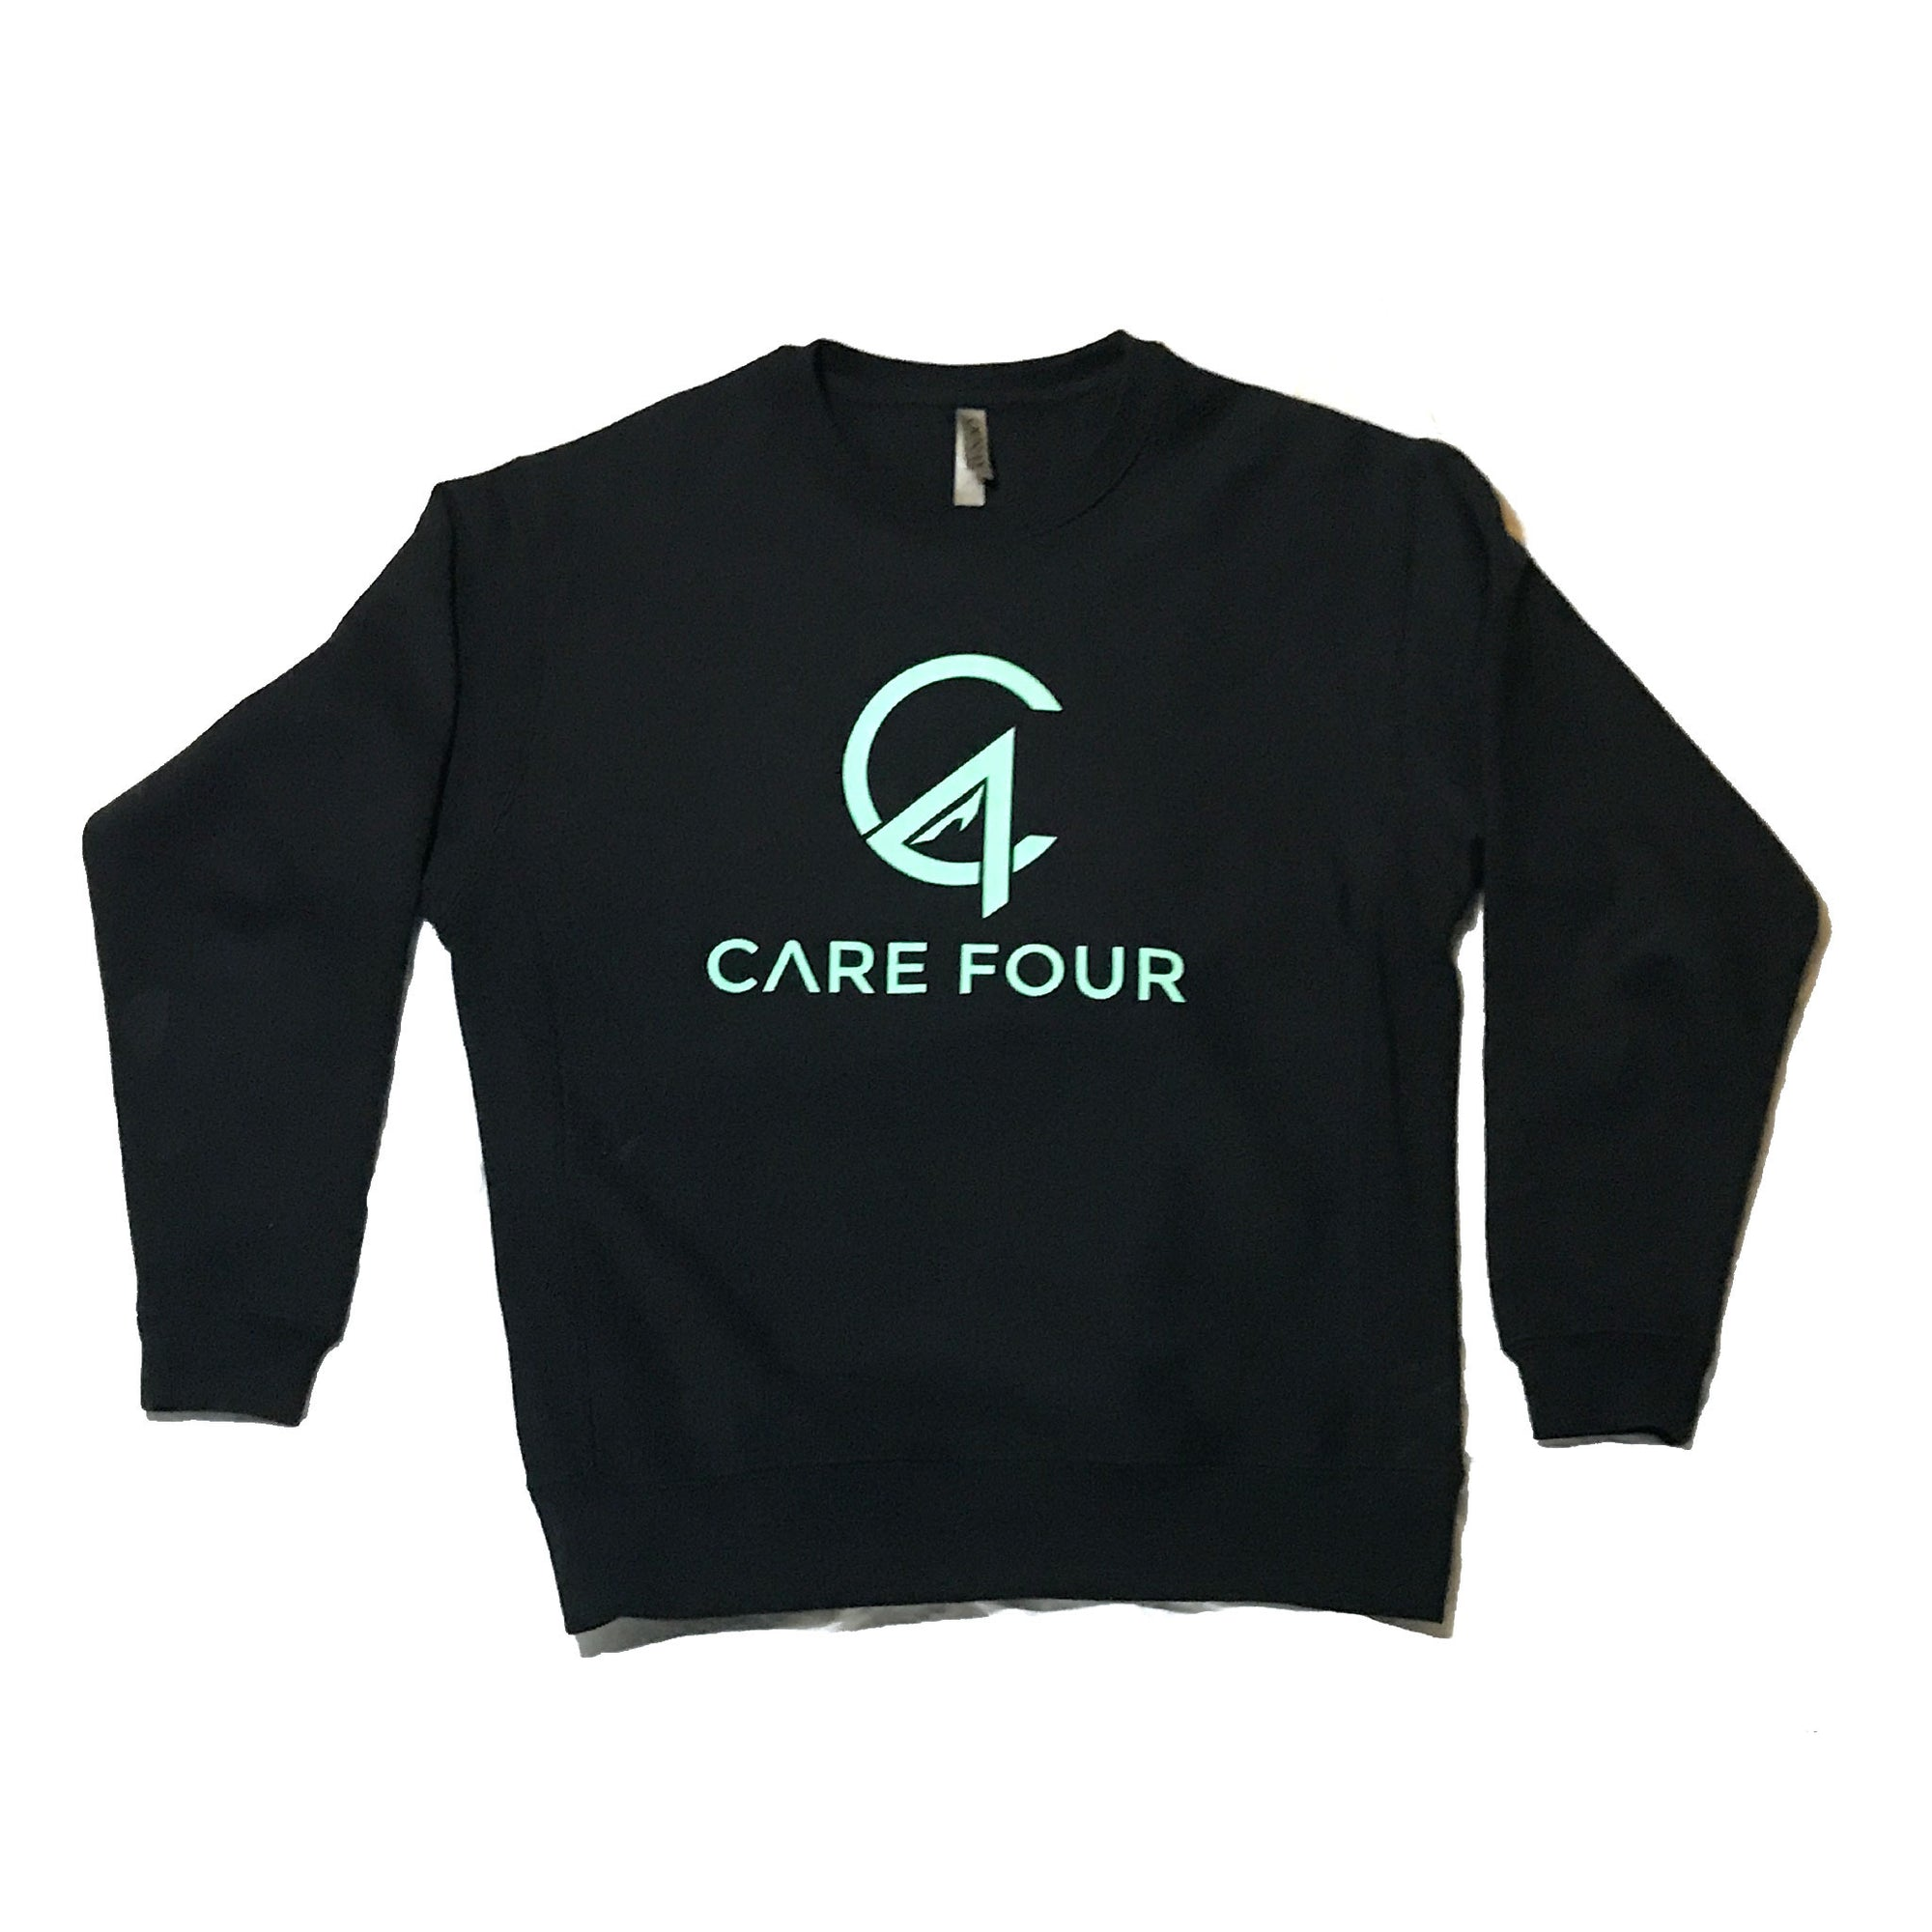 Mint C4 Crewneck Sweatshirt - Care Four